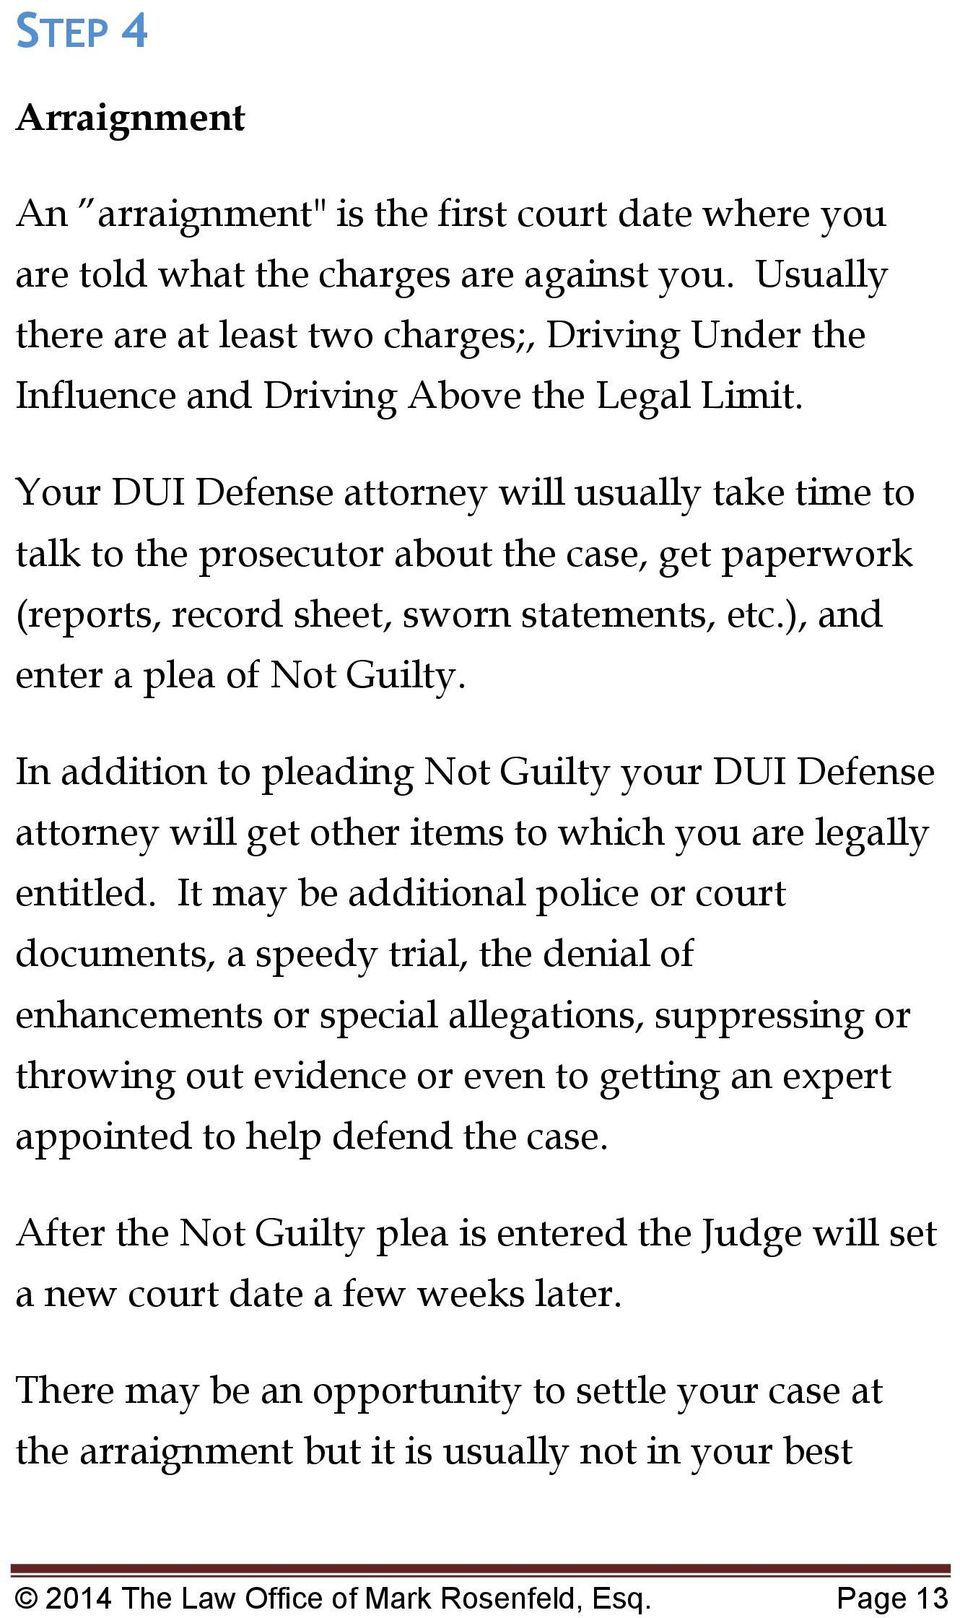 Your DUI Defense attorney will usually take time to talk to the prosecutor about the case, get paperwork (reports, record sheet, sworn statements, etc.), and enter a plea of Not Guilty.